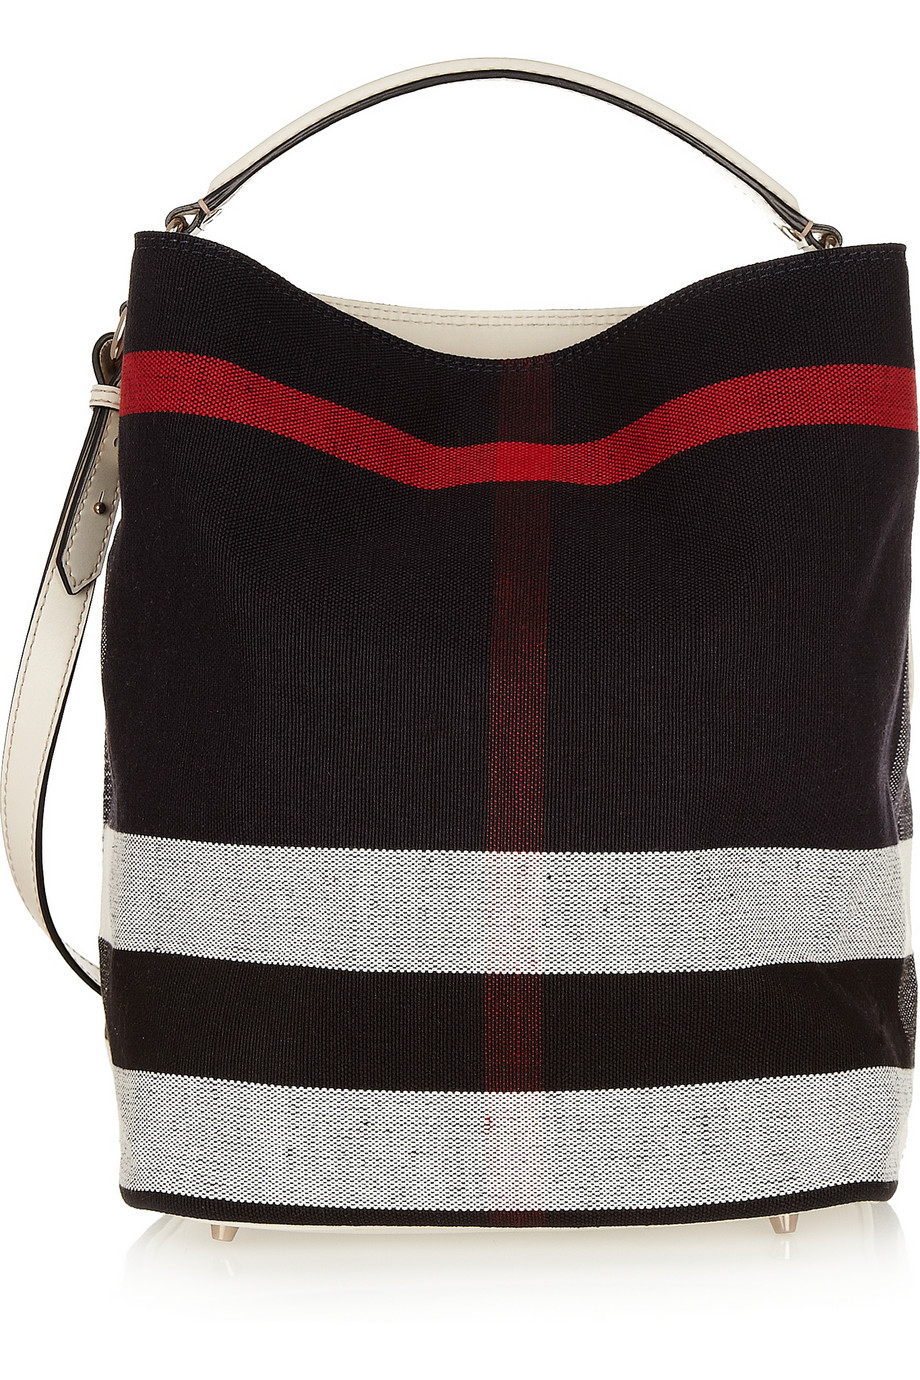 d037d44aa161 Lyst - Burberry Checked Canvas Hobo Bag in Red